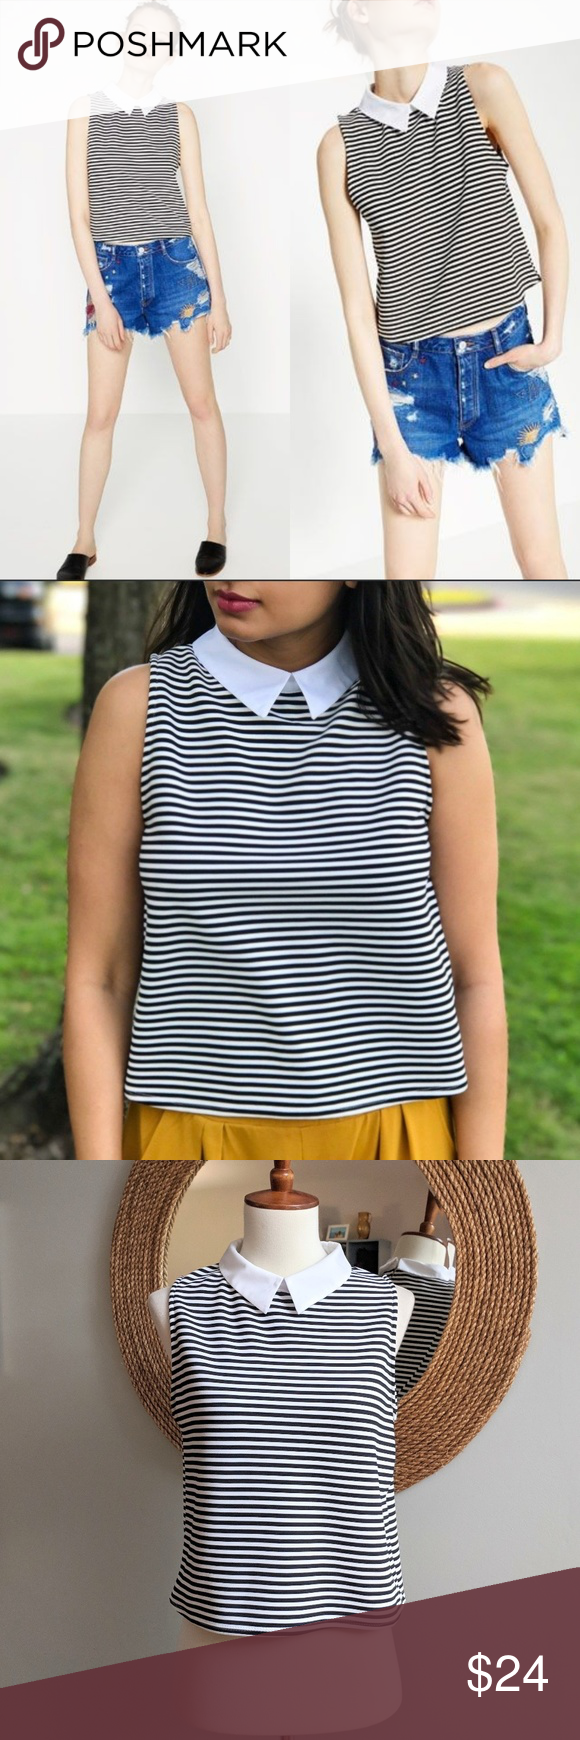 bcfb9df72c630d Zara Striped Poplin Collar Crop Top Black and white striped sleeveless top  with contrasting white collar. Keyhole back with button closure. Size Medium .